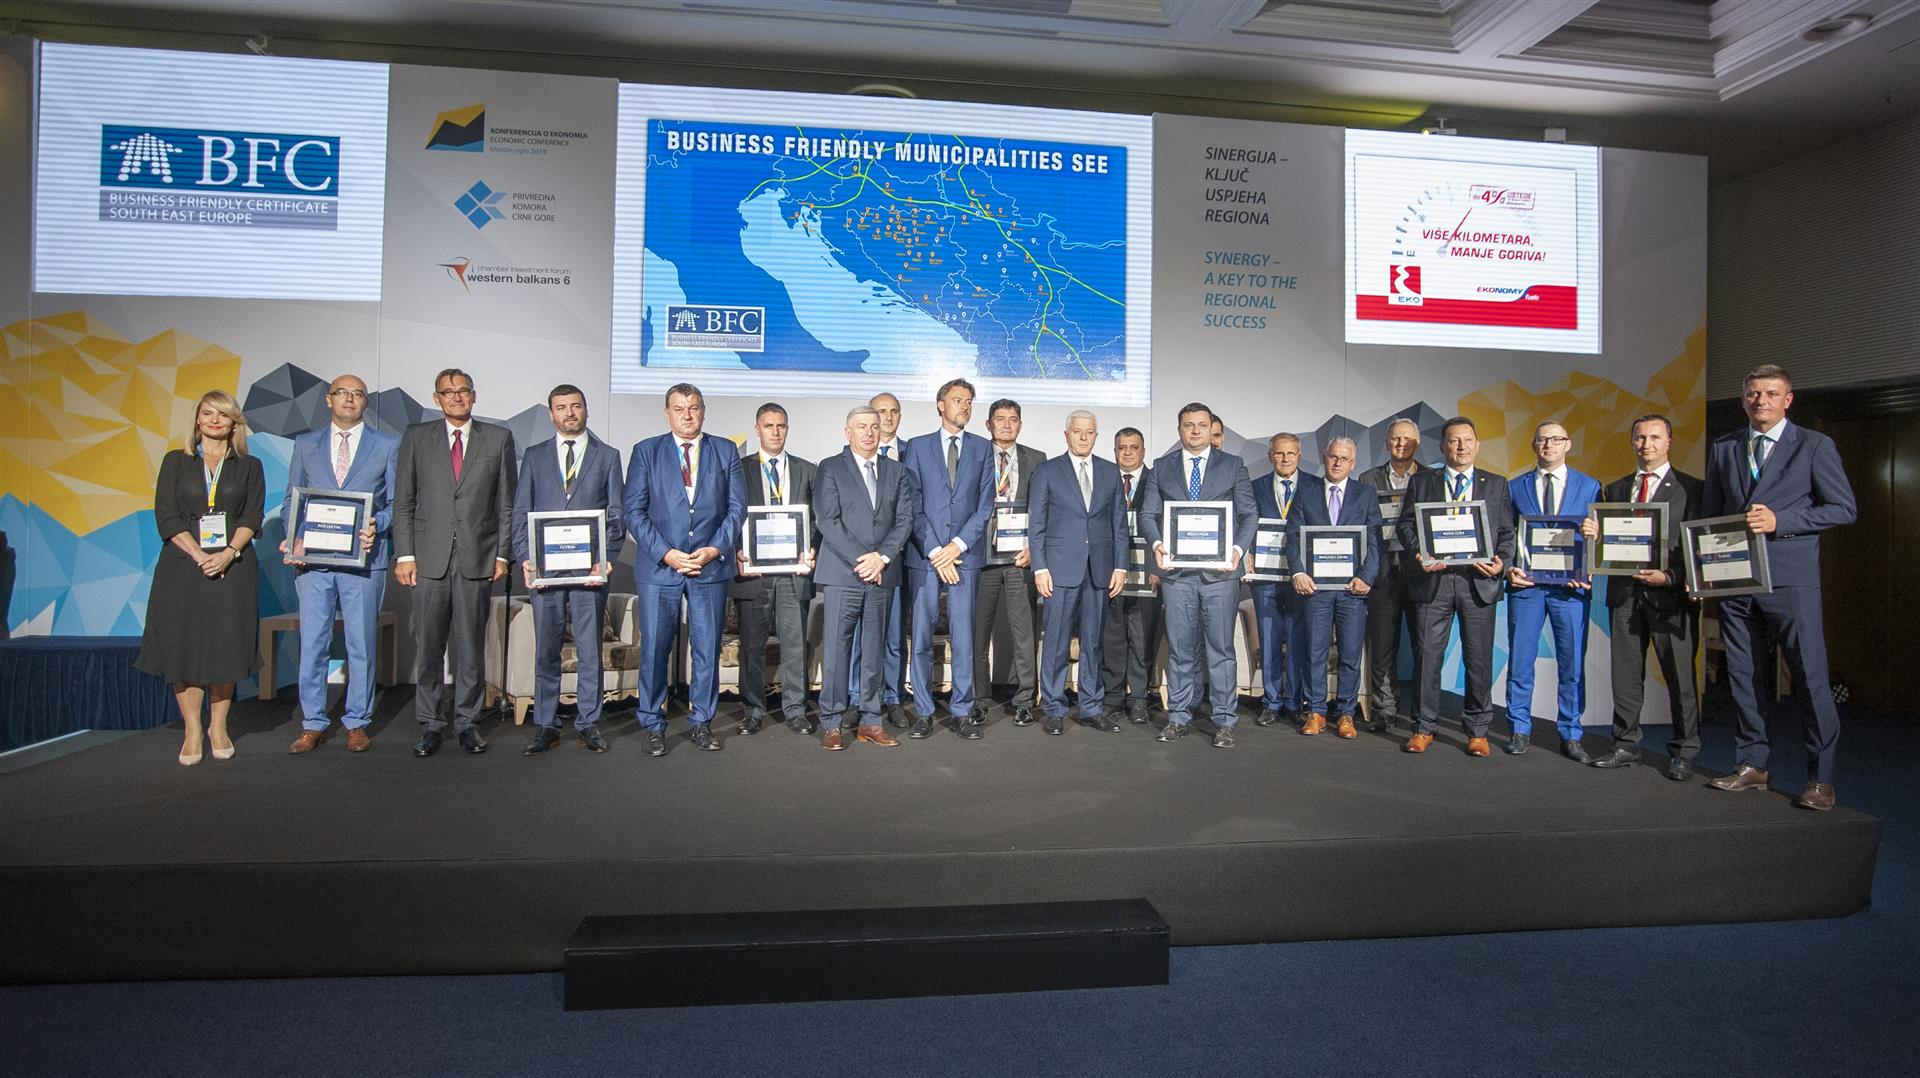 BFC SEE Certificate award ceremony 2019 in Montenegro